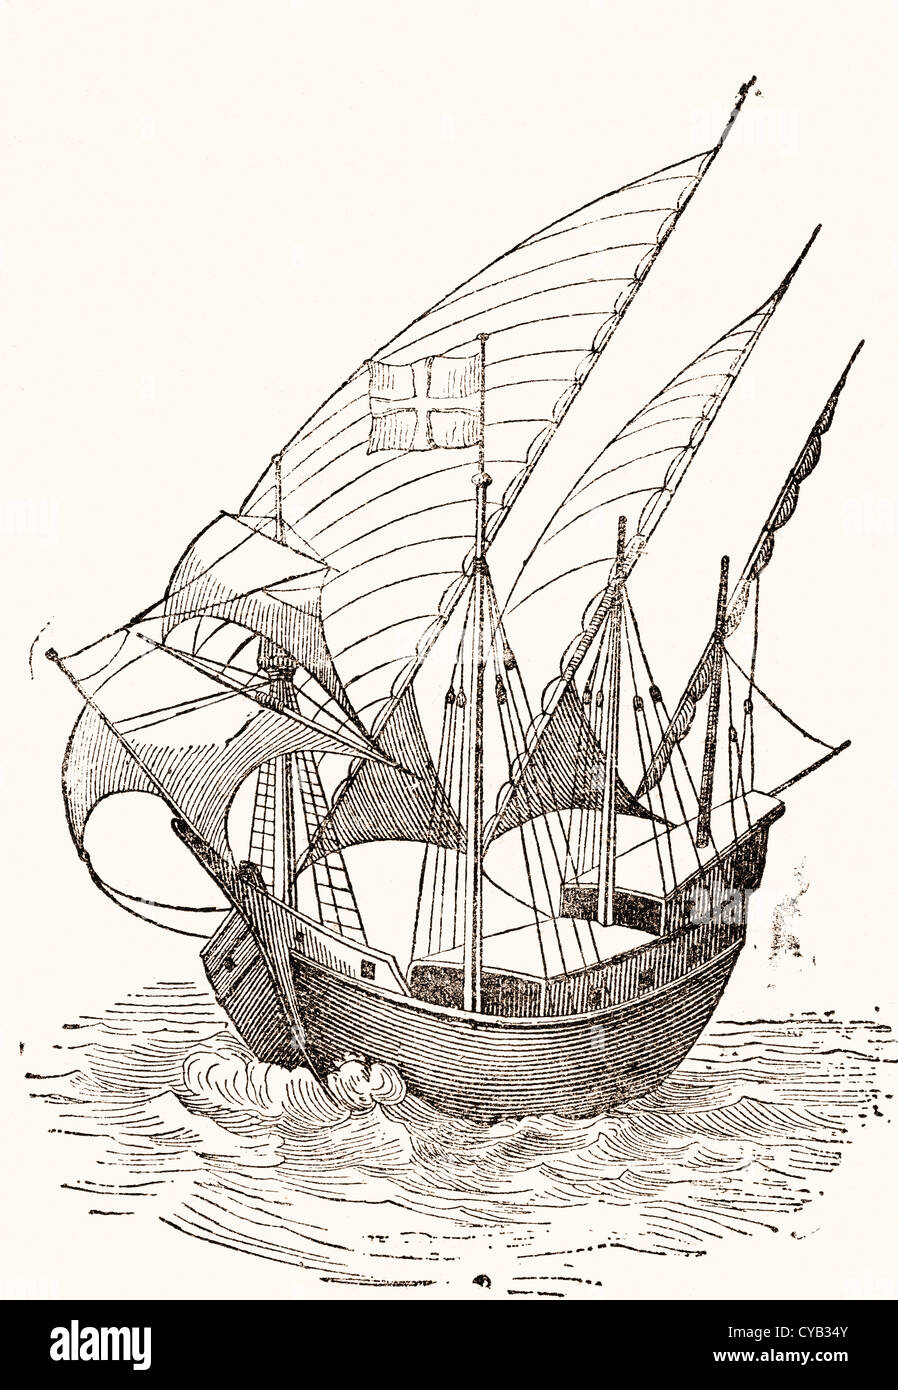 A 15th century Caravel. - Stock Image